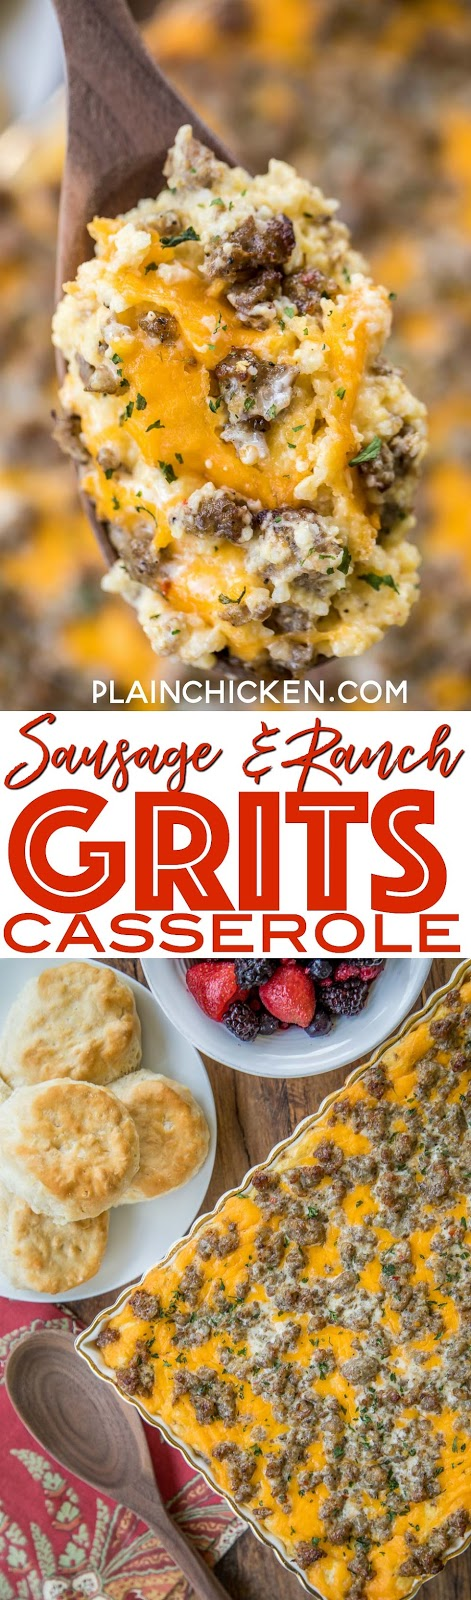 Sausage and Ranch Grits Casserole recipe - CRAZY good!!! We love this casserole for breakfast, lunch and dinner. Grits, chicken broth, milk, eggs, Velveeta, sausage, Ranch, cheddar cheese. Can make ahead and refrigerate or freeze for later. This always get RAVE reviews! SO good!!! #breakfast #casserole